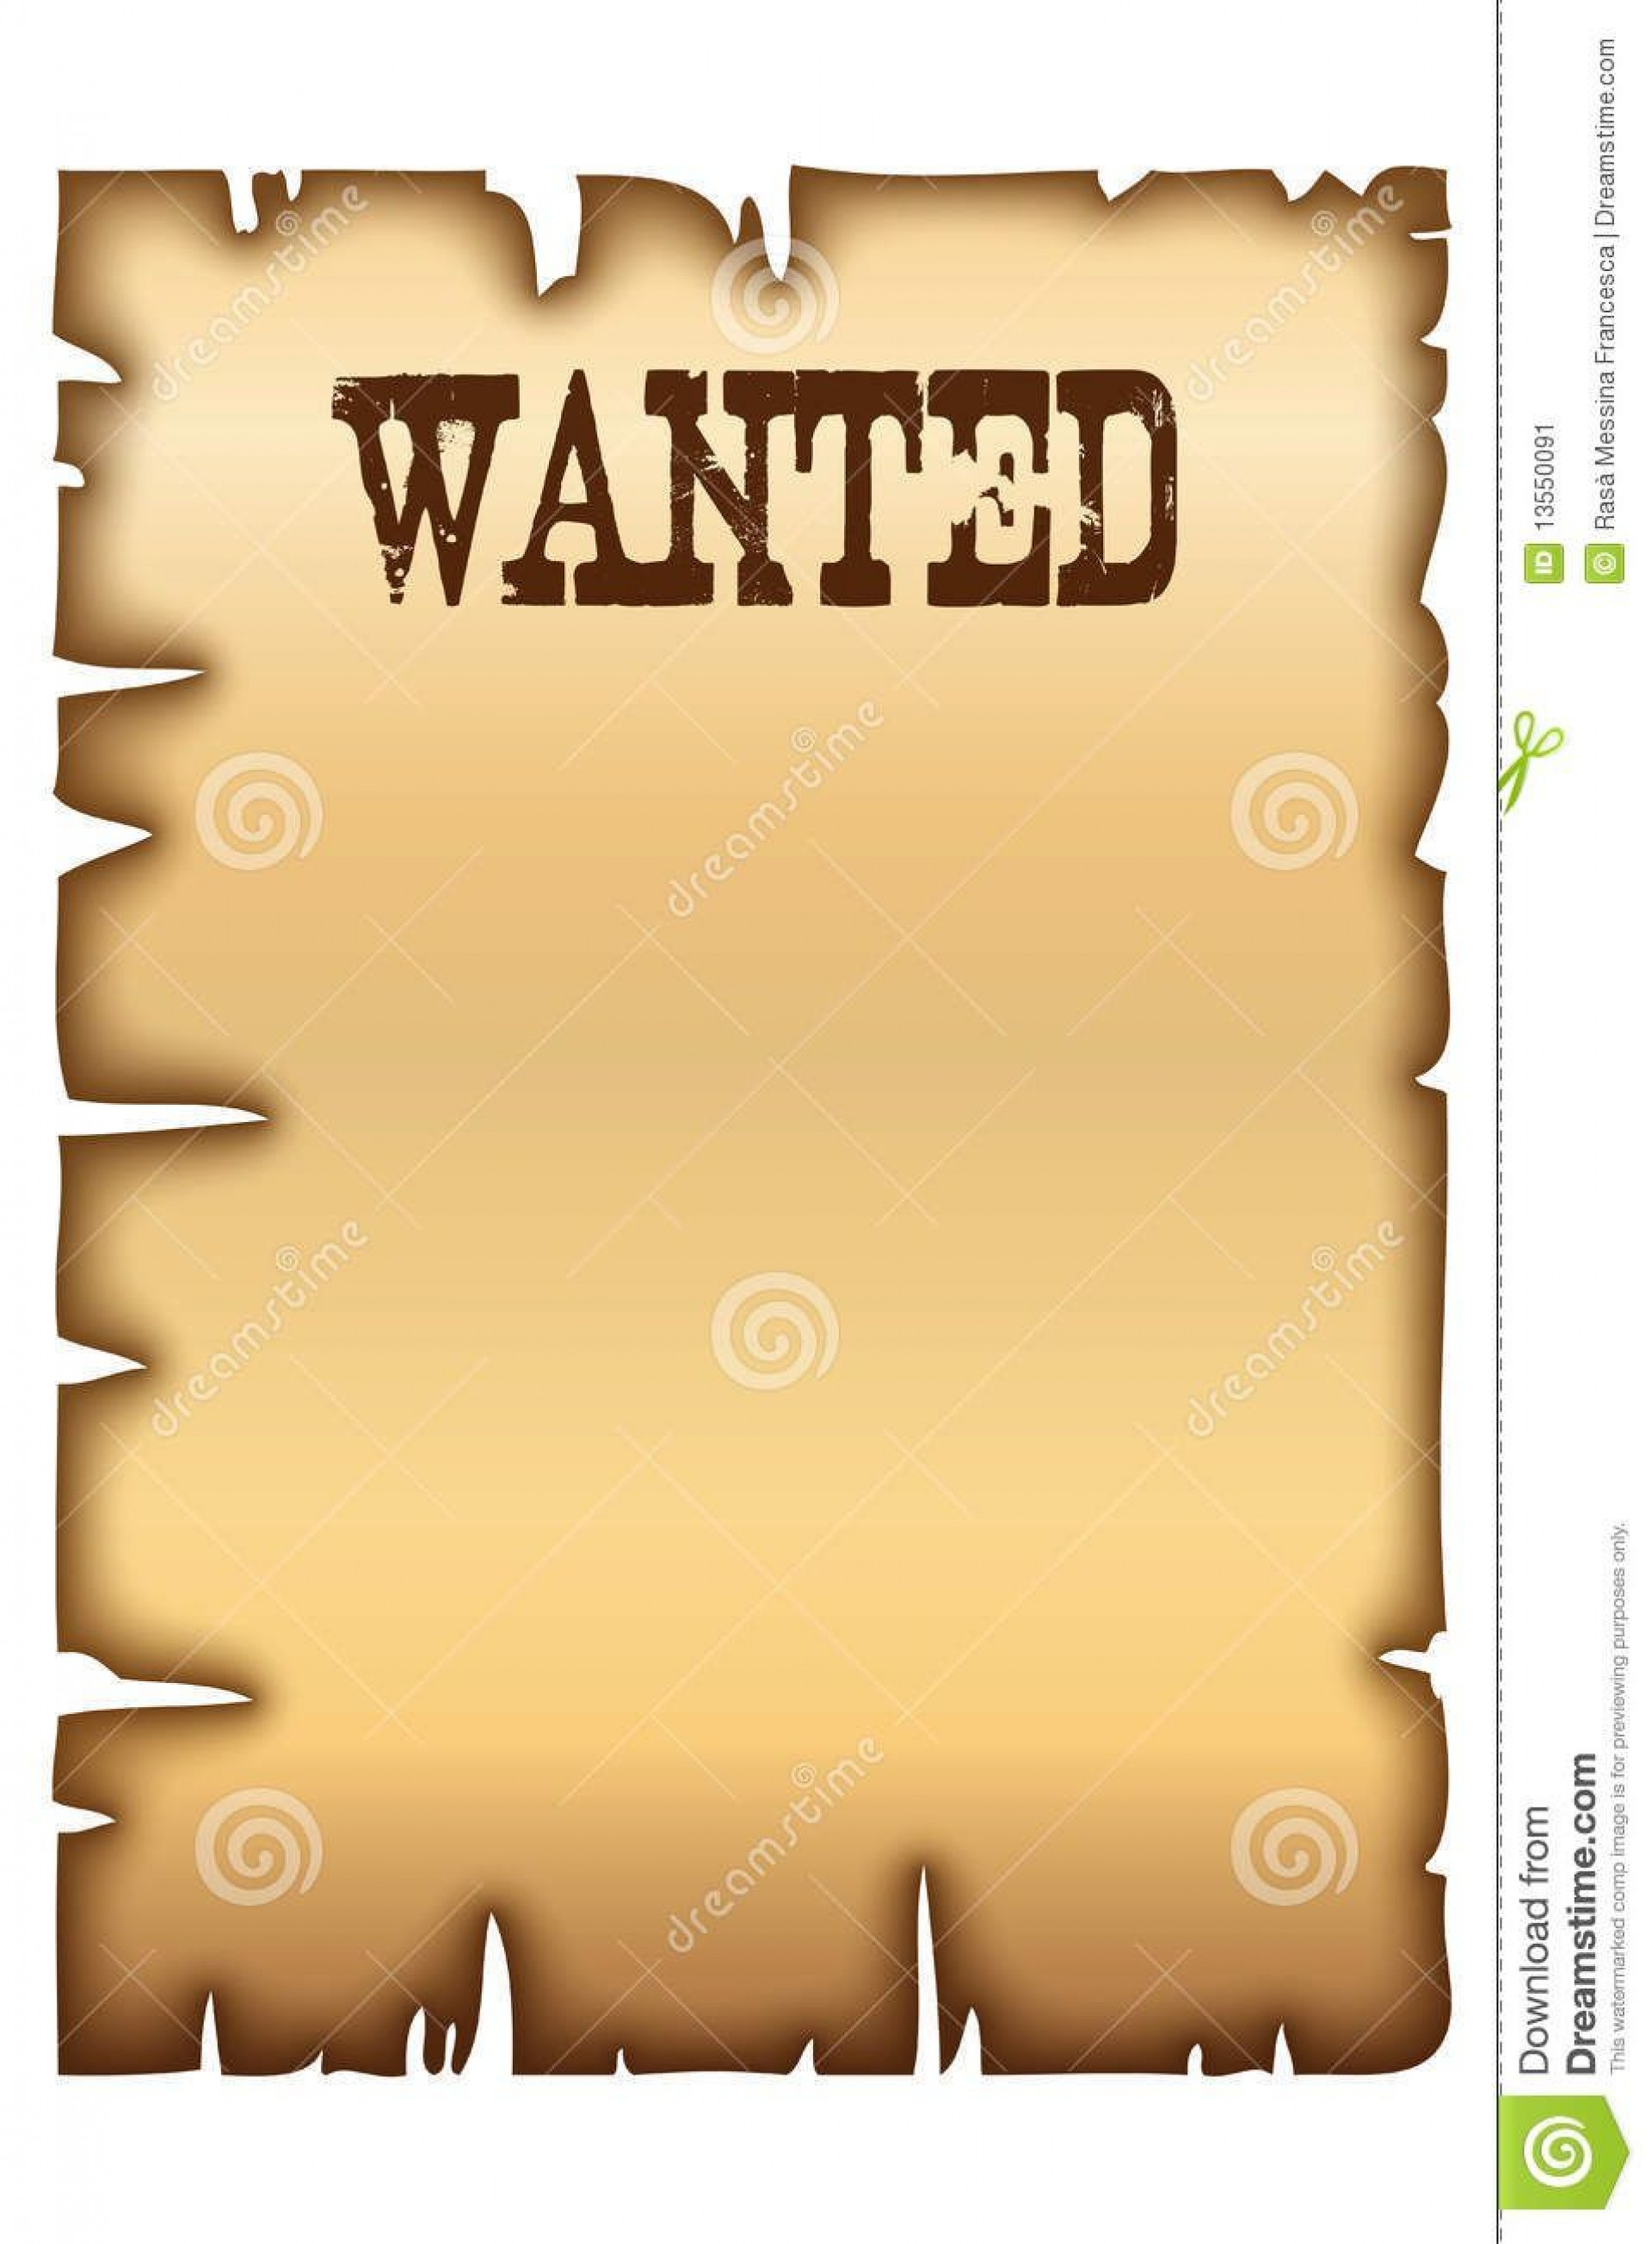 004 Wonderful Wanted Poster Template Microsoft Word High Definition  Western Most1920